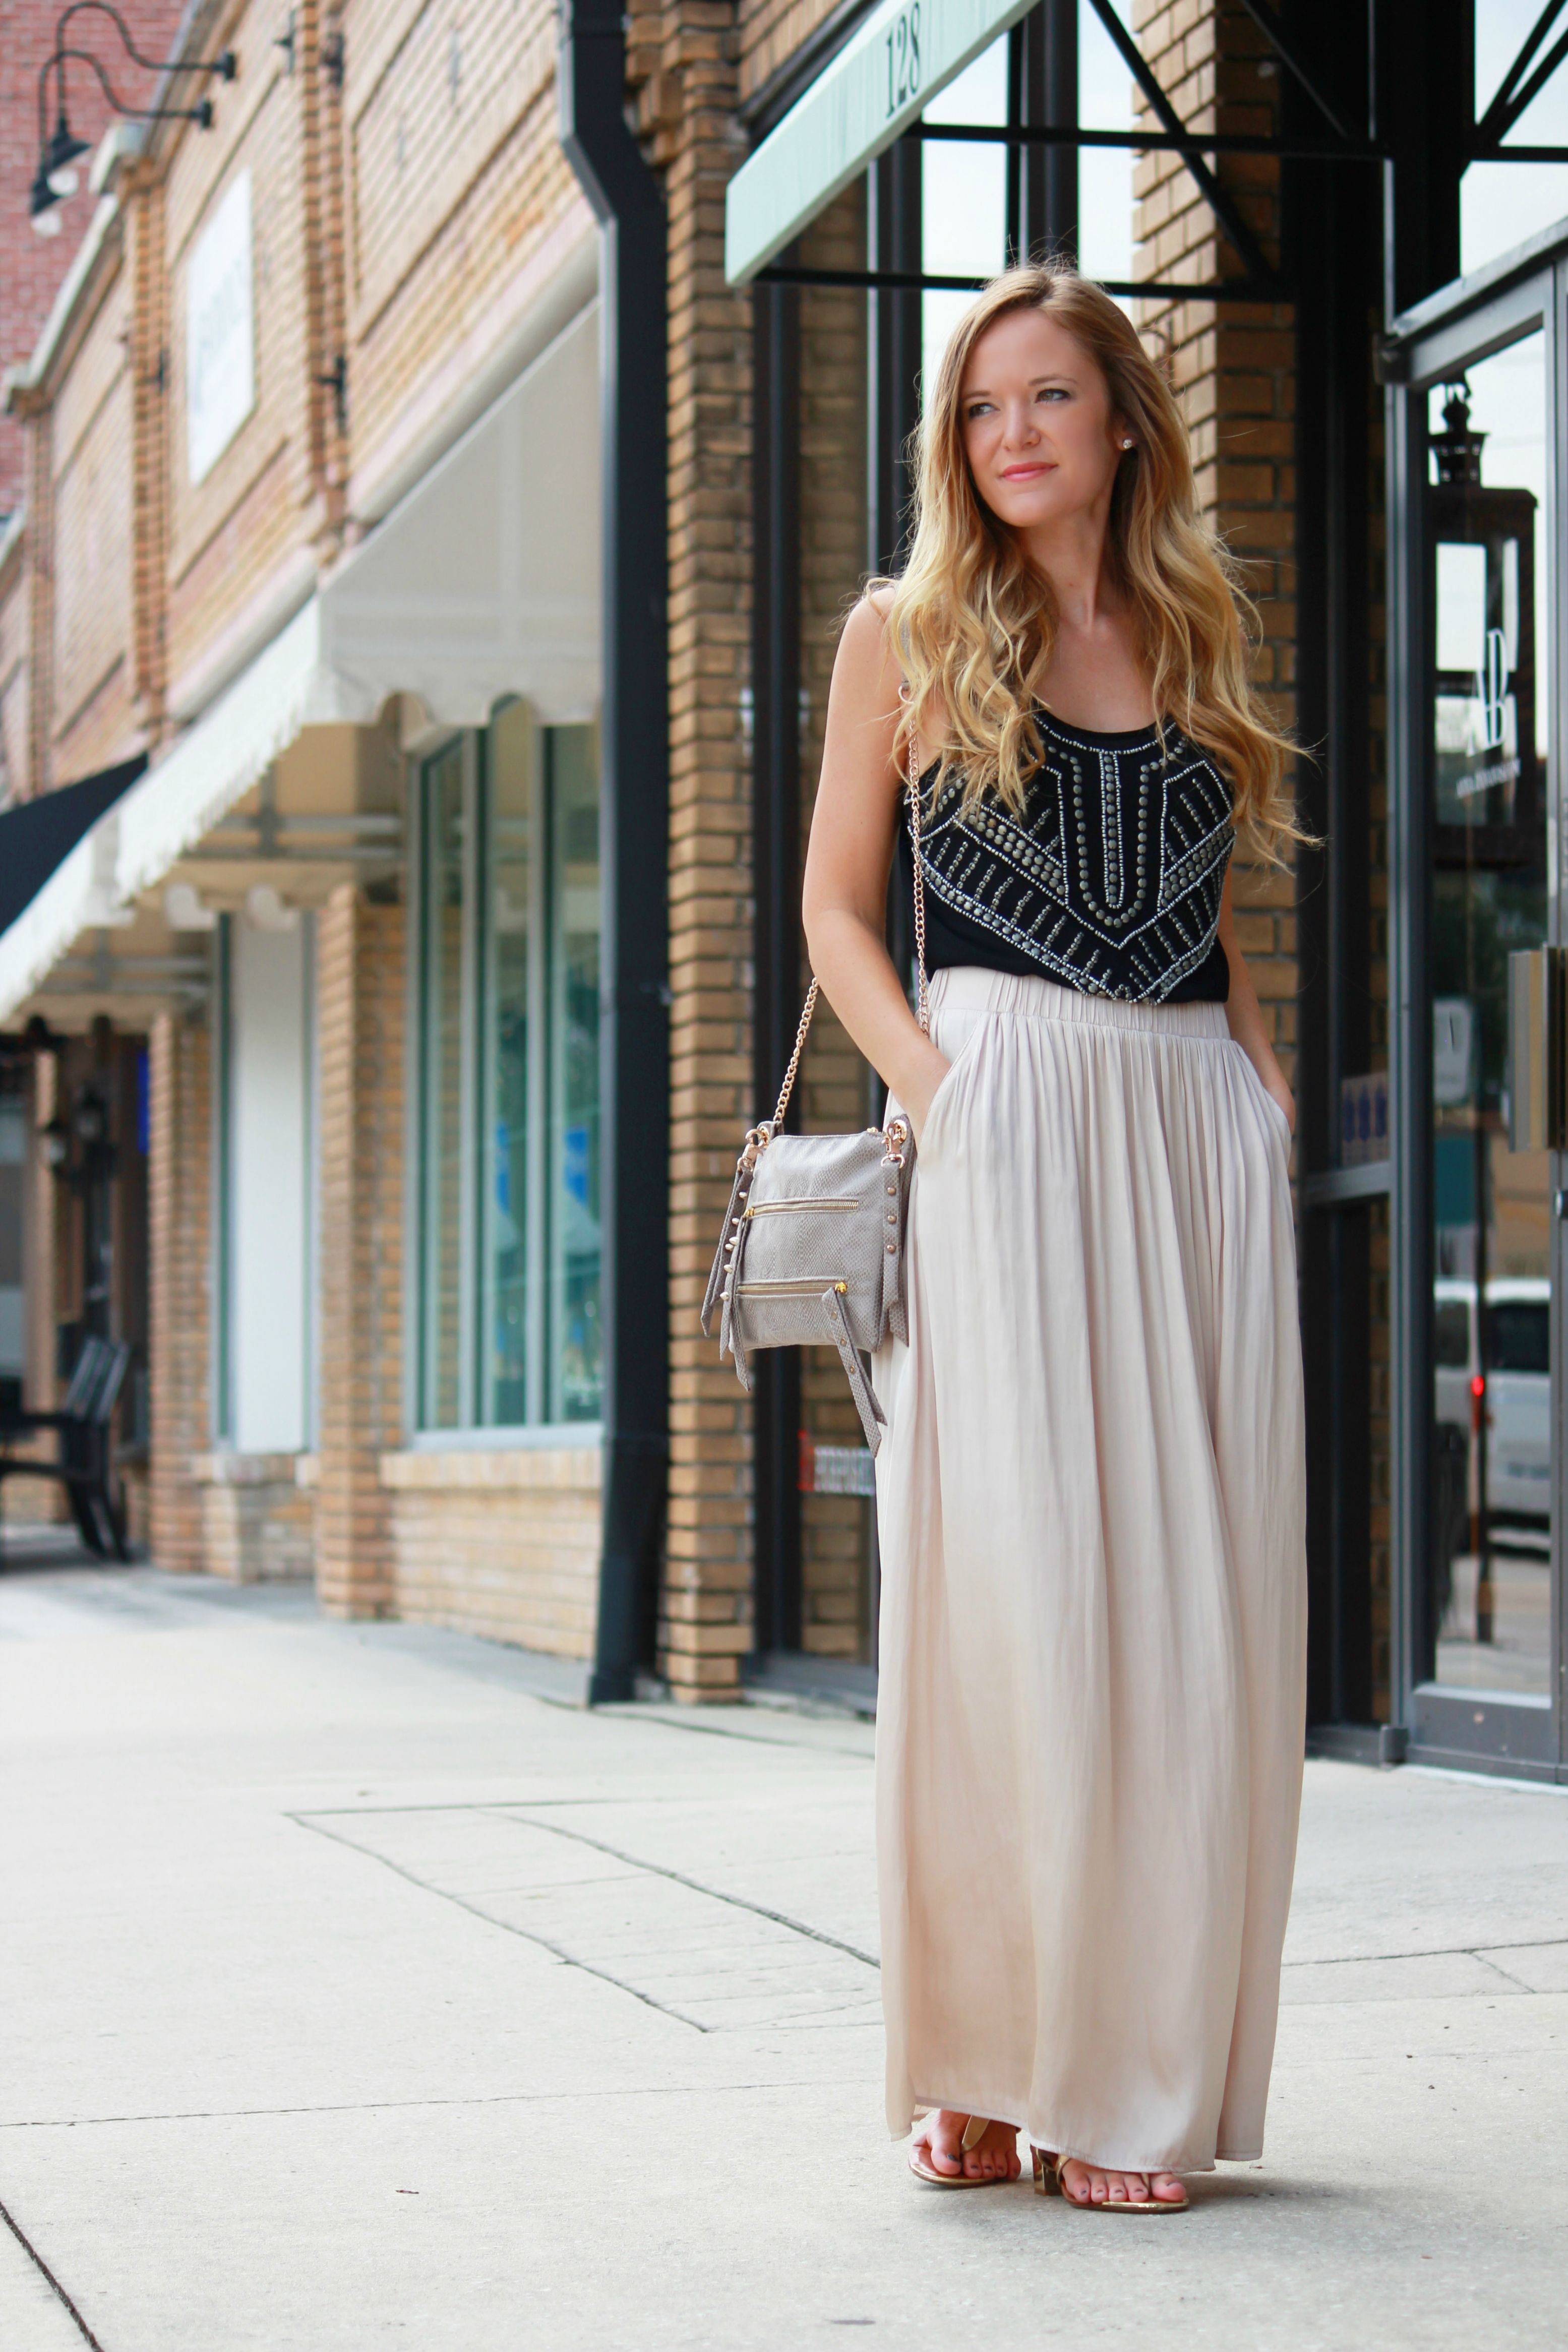 What Shoes To Wear With Maxi Skirt In The Fall